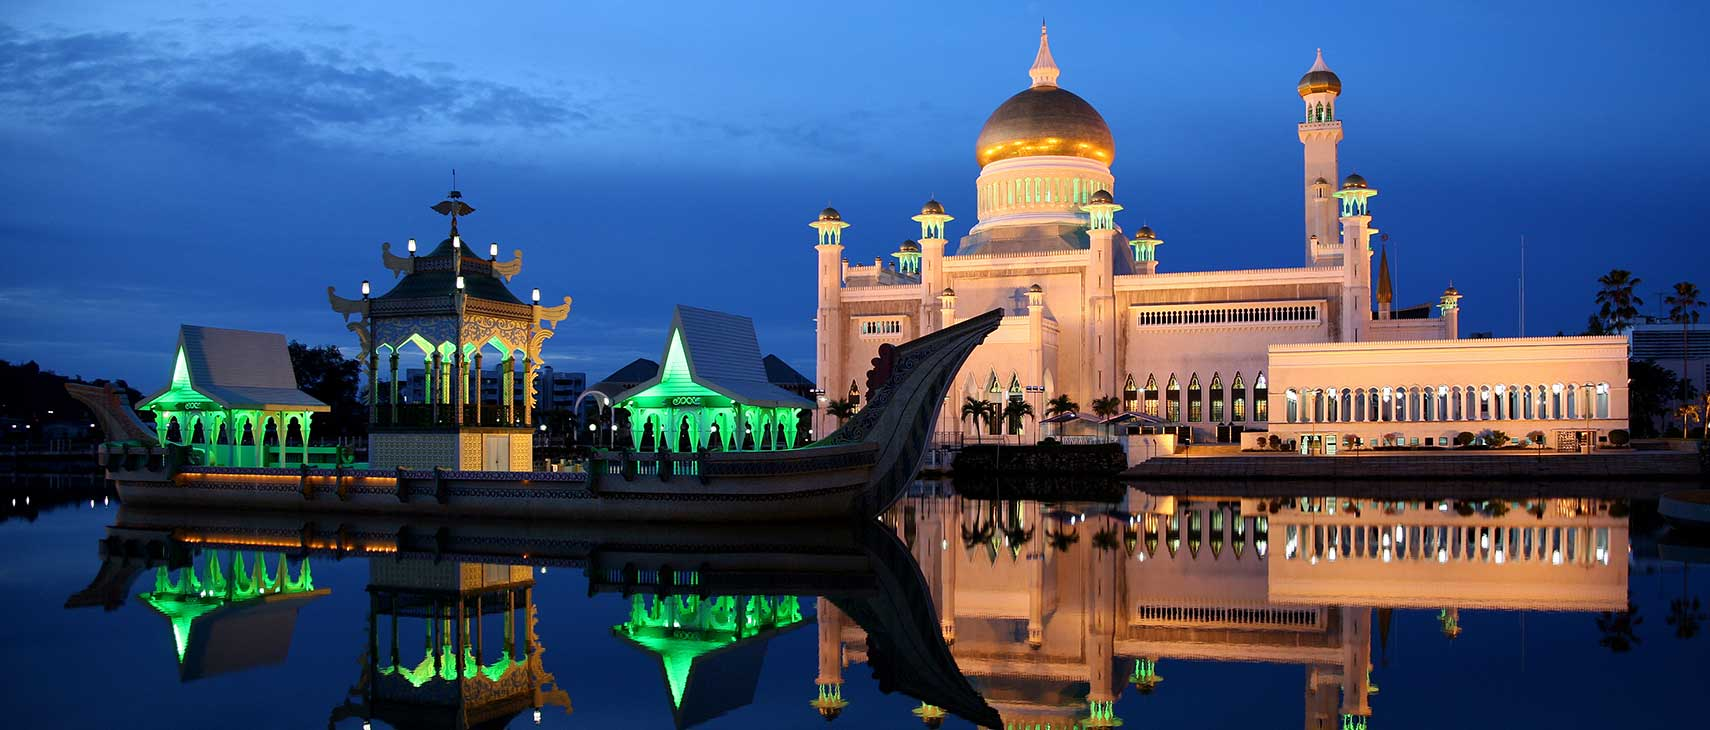 Brunei - Country Profile - Negara Brunei Darussalam